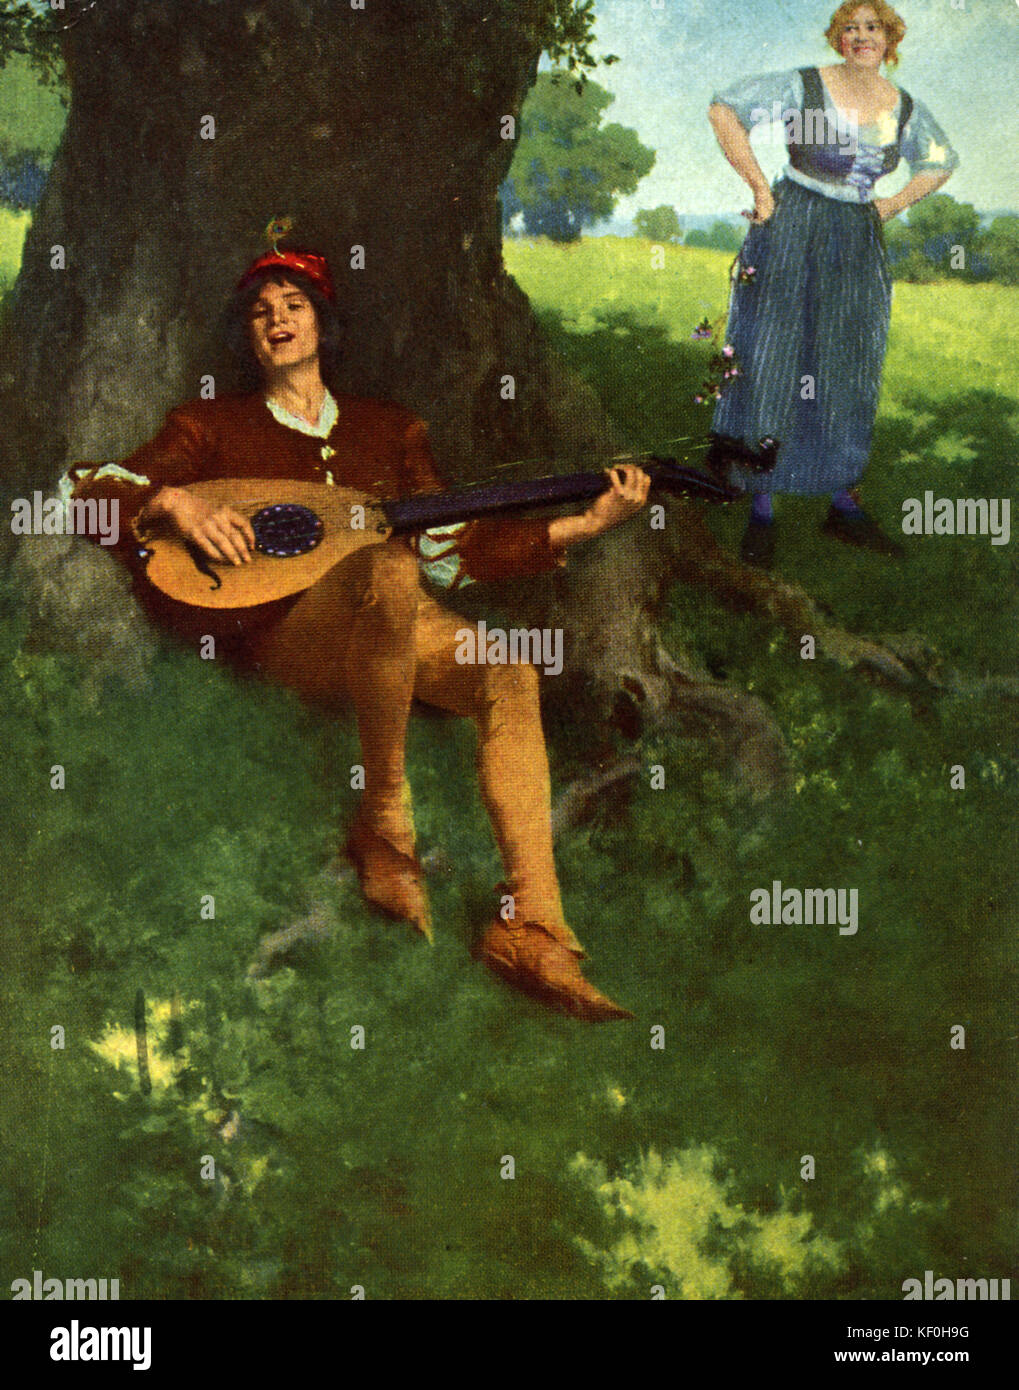 Under the Greenwood tree.  Minstrel with a lute serenades a women in a rural setting.  Caption: 'Under the Greenwood - Stock Image